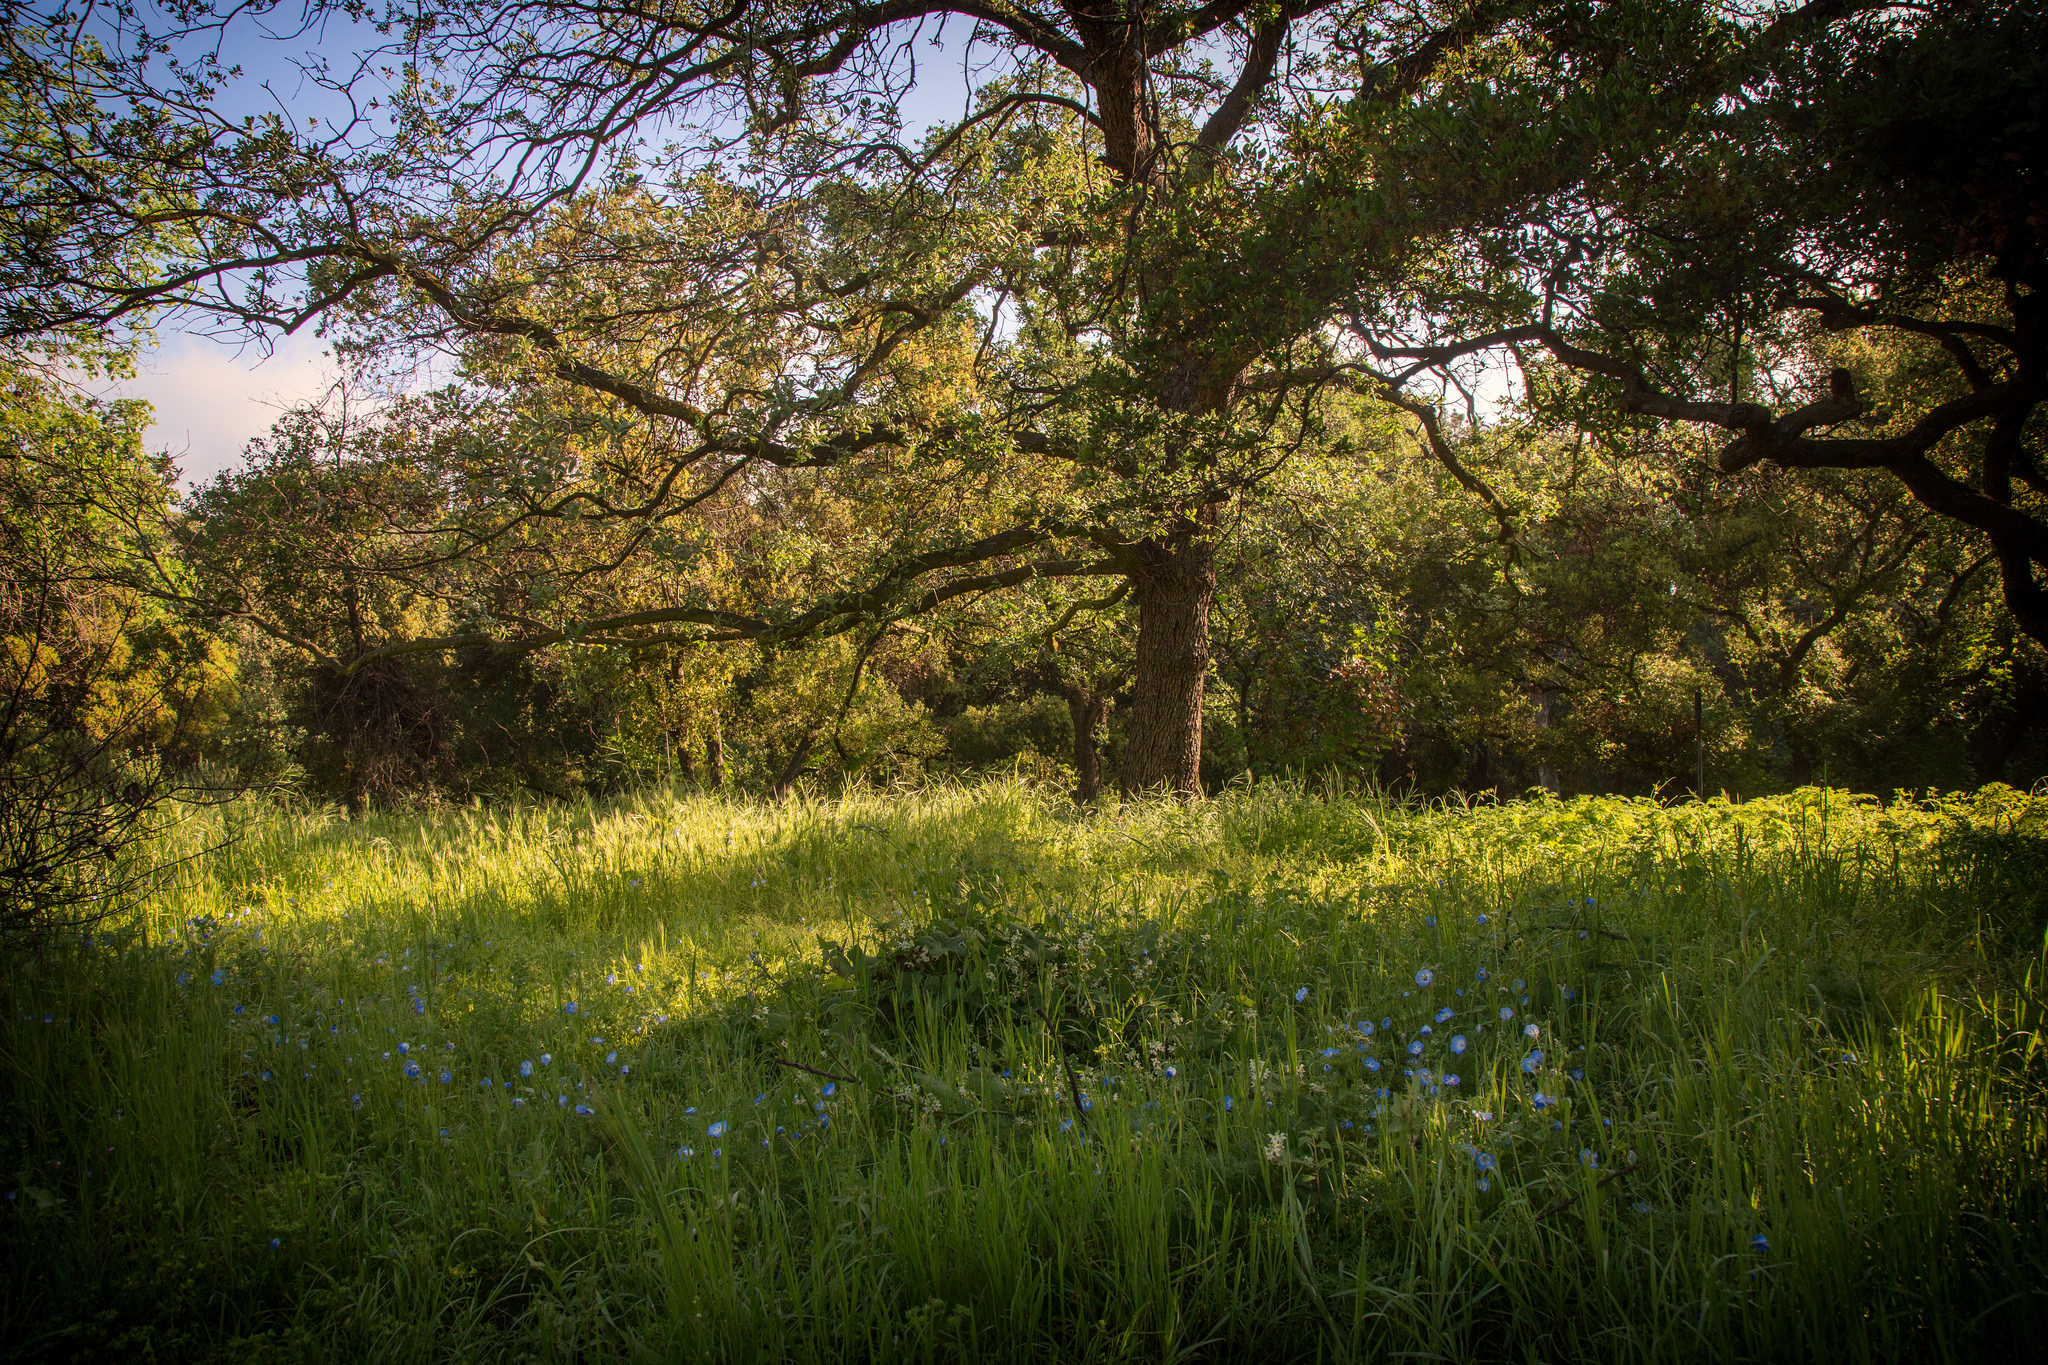 A beautiful oak in this magical meadow